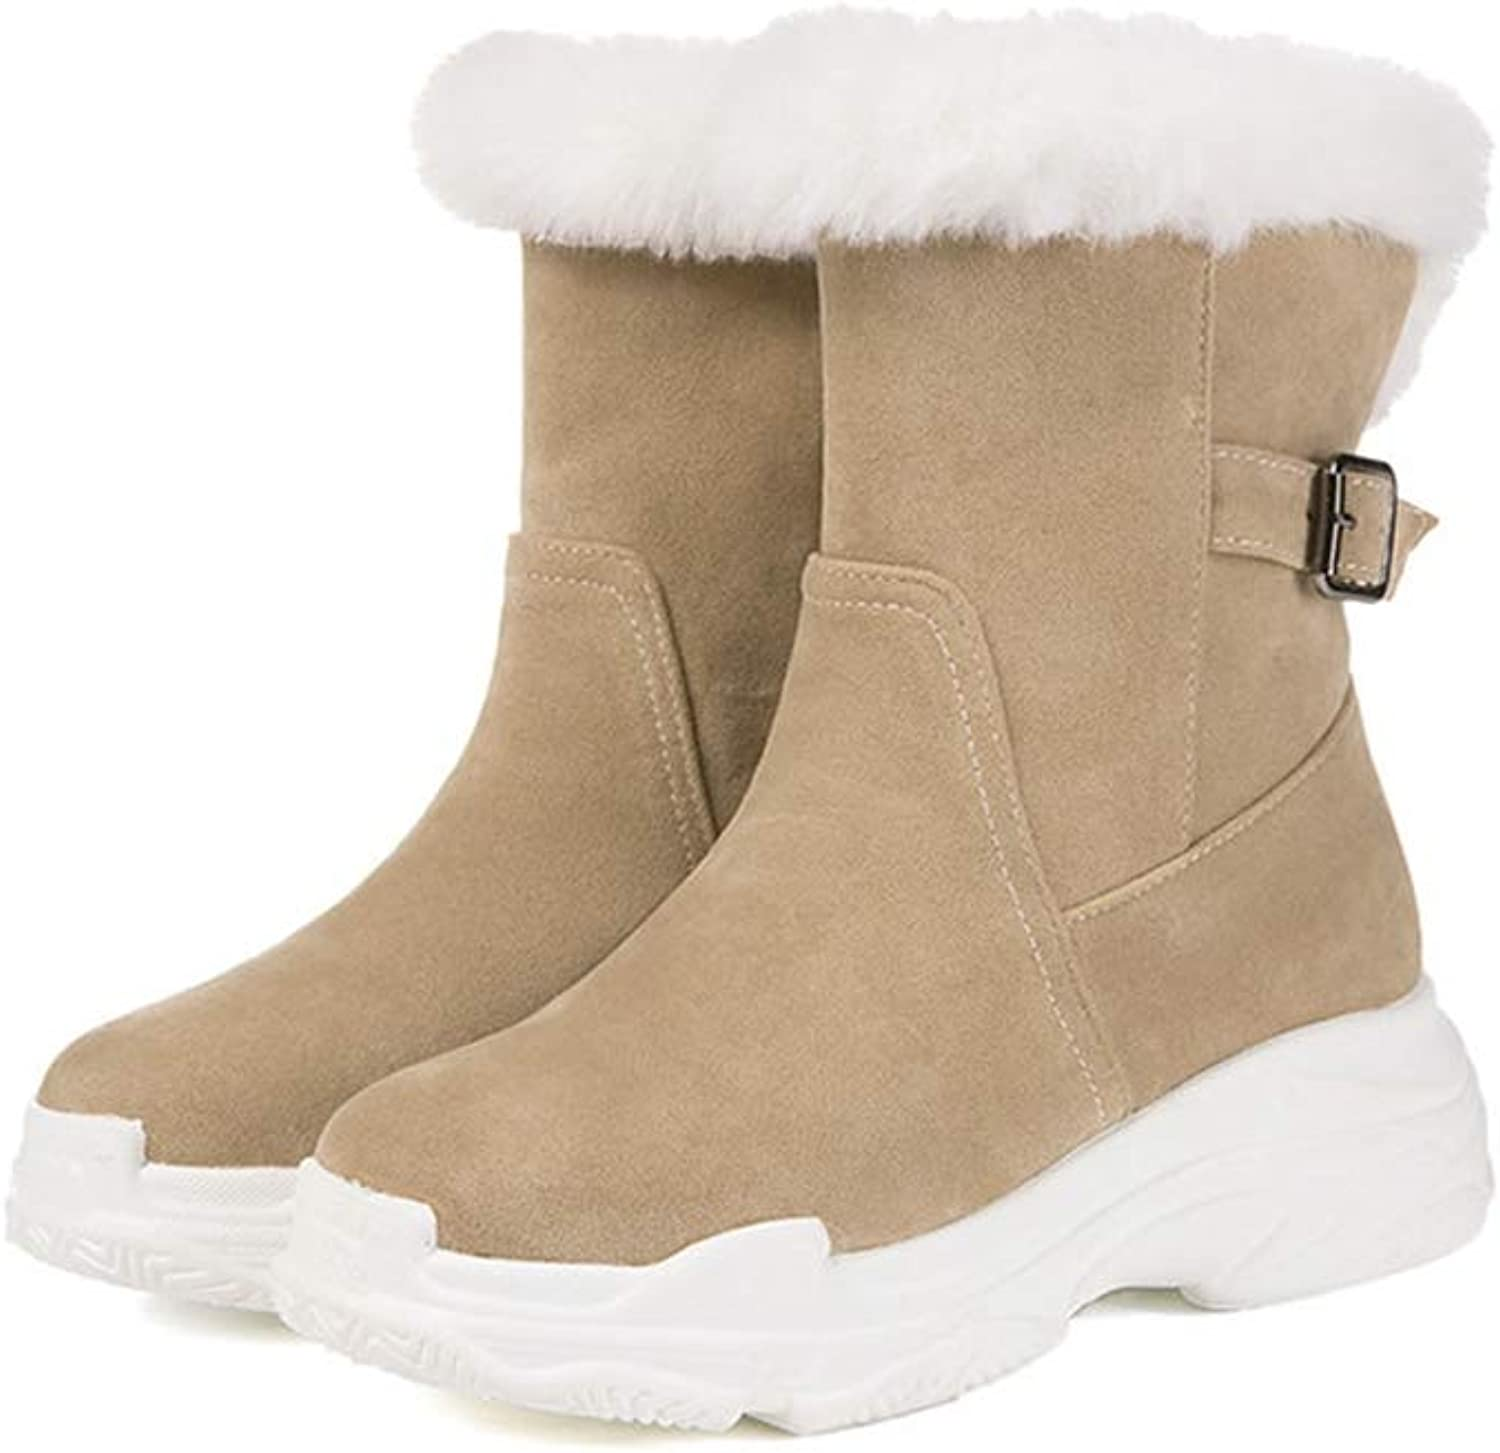 Snow Boots Women Round Toe Zip Flock Thick Fur Winter Keep Warm Snow Boots Female Flat Platform Ankle Boots